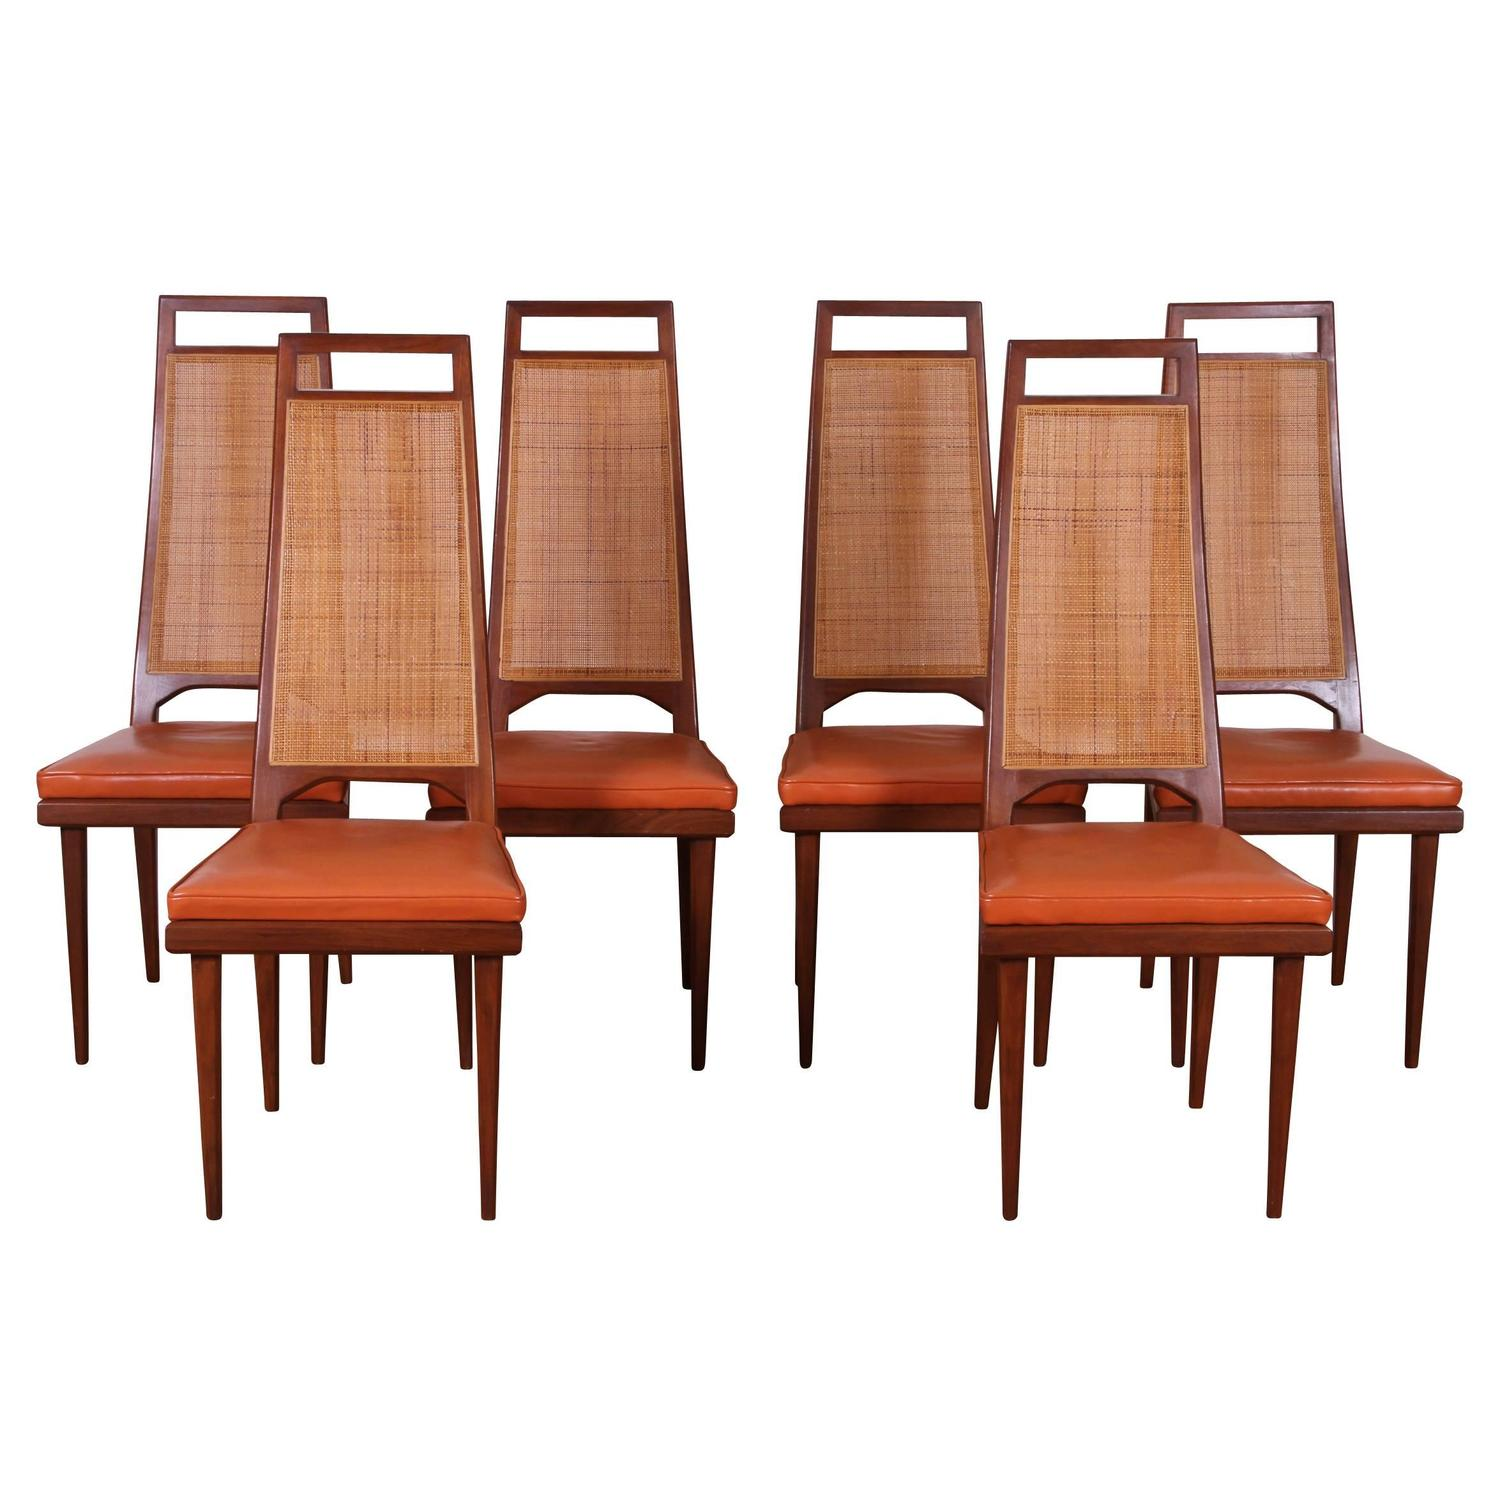 six mid century cane back dining chairs by urban furniture at 1stdibs